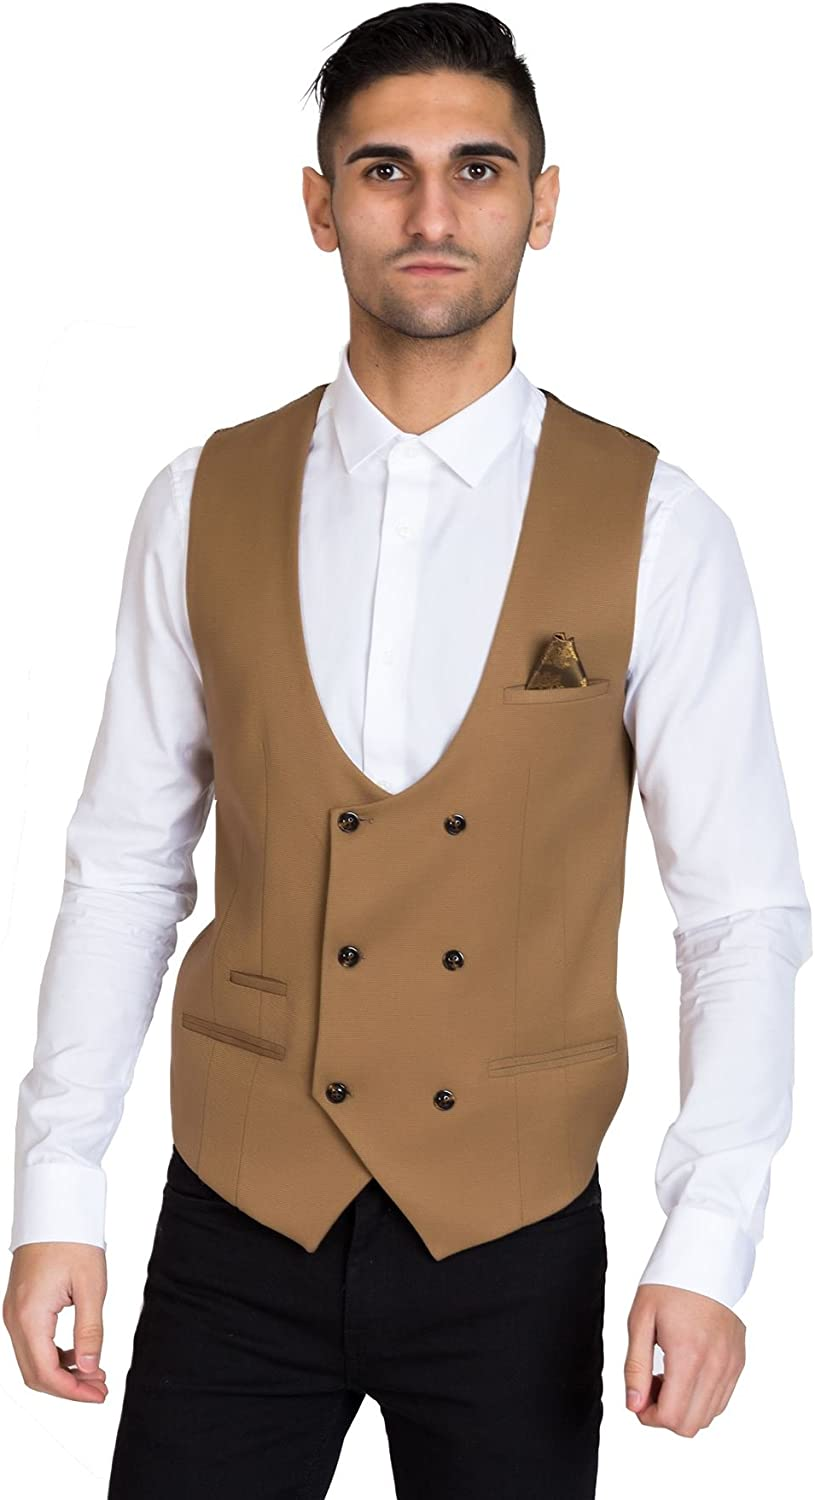 New Vintage Tuxedos, Tailcoats, Morning Suits, Dinner Jackets Marc Darcy Mens Tan Brown Double Breasted Waistcoat Smart Formal Vest by £48.99 AT vintagedancer.com